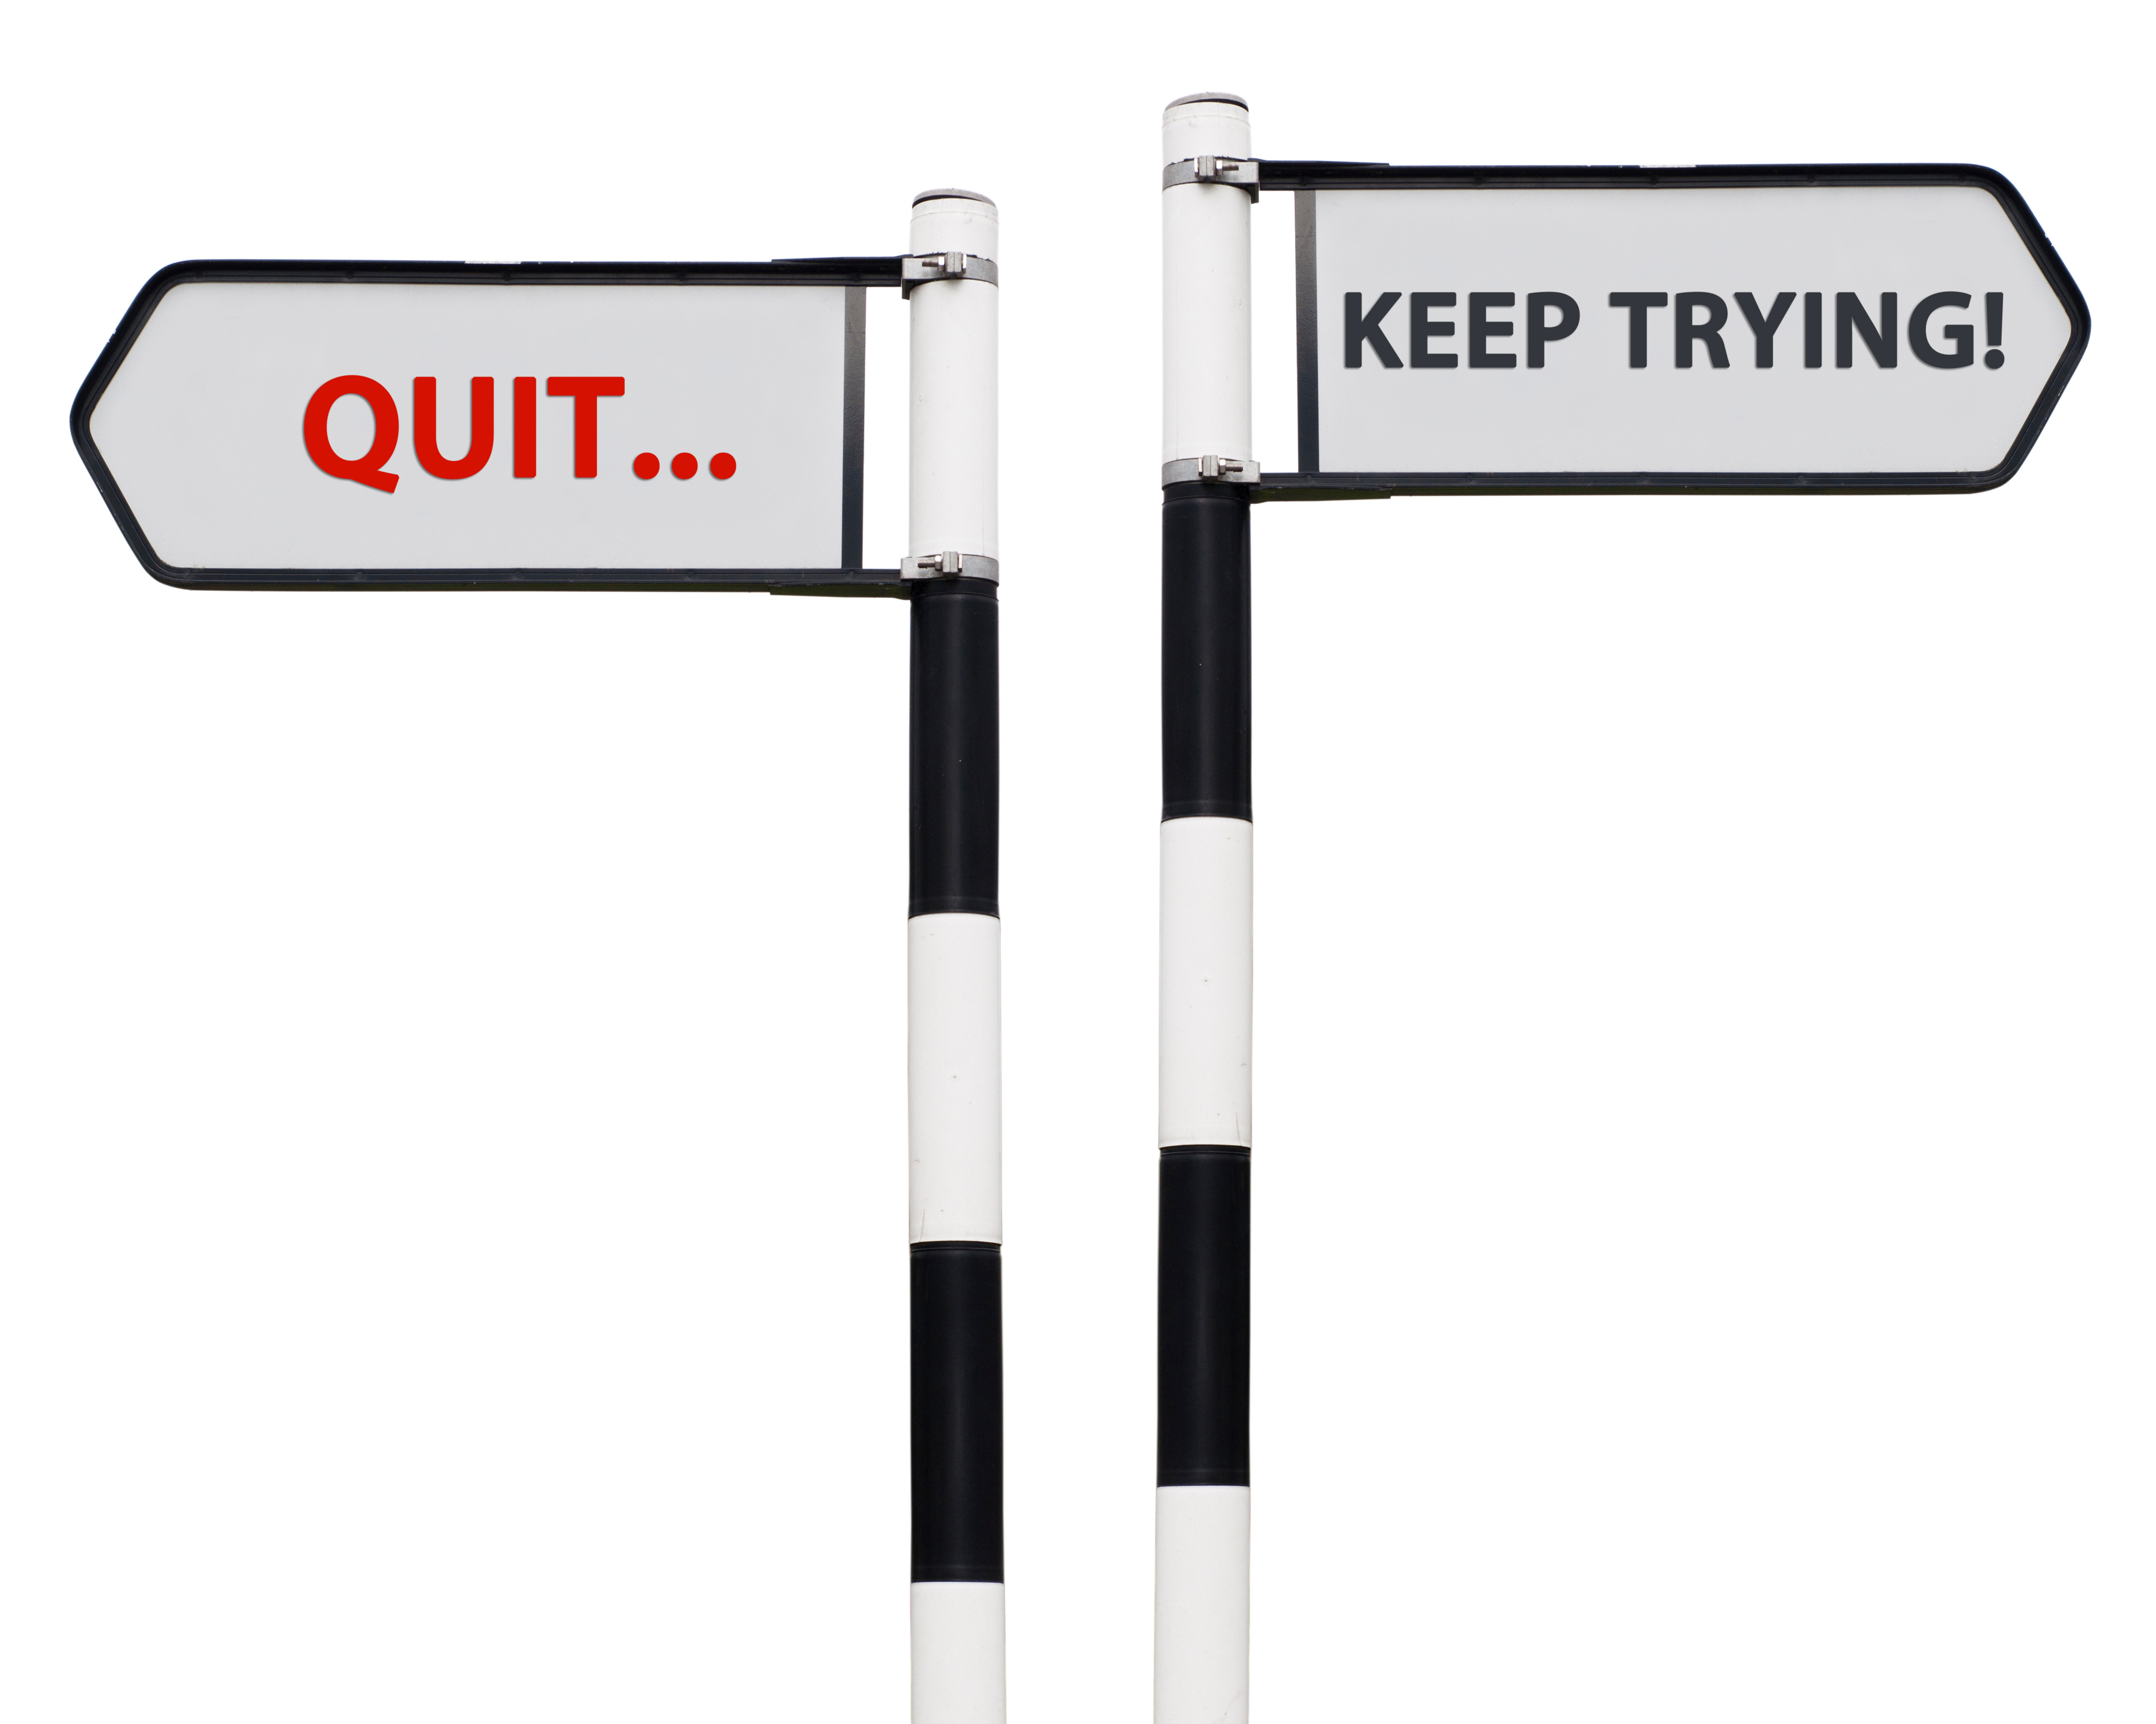 keep-trying-and-don't-quit-quitters-never-win